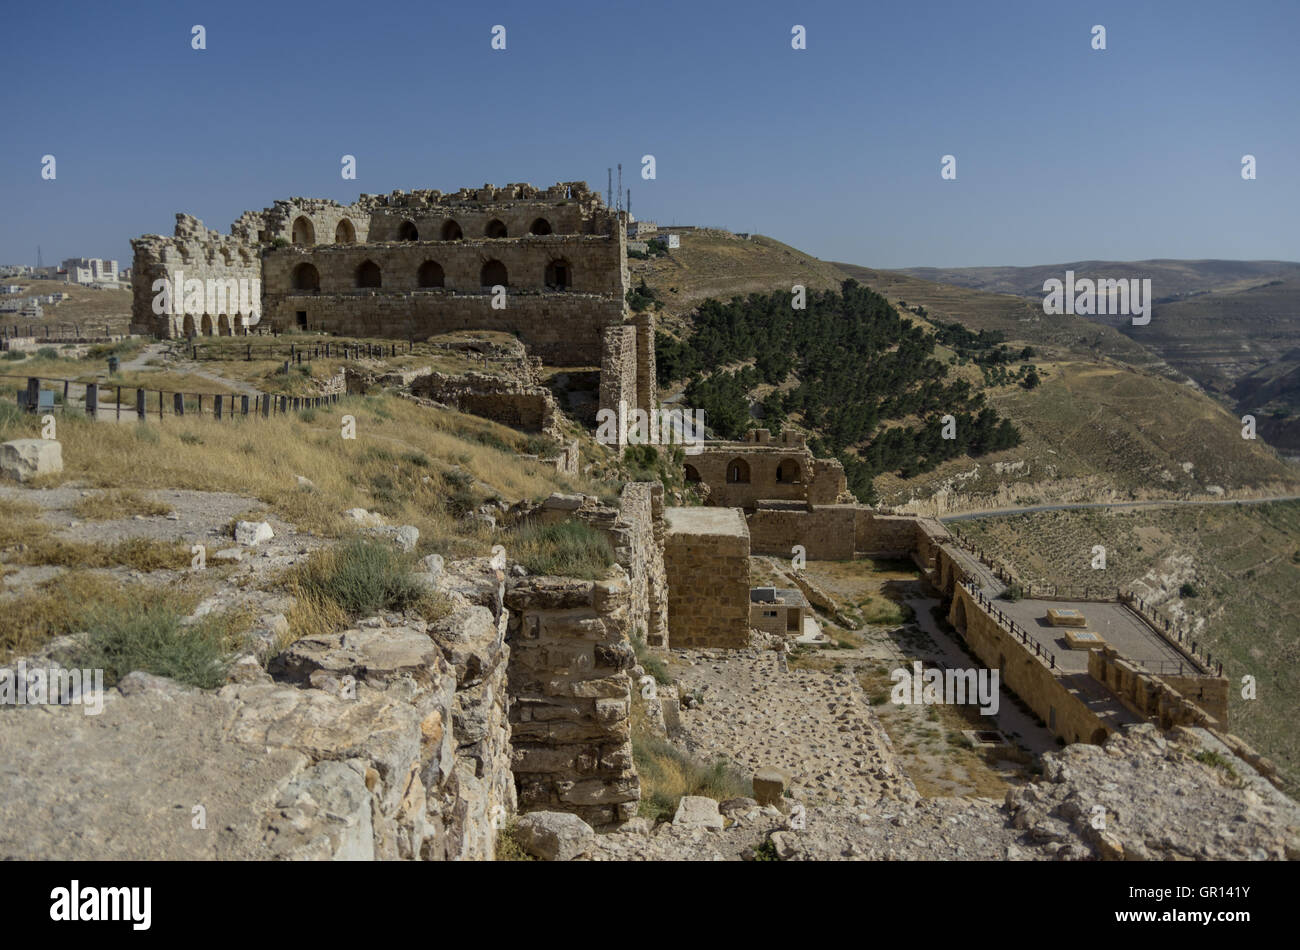 Ruins of the Kerak Castle, a large crusader castle in Kerak (Al Karak) in Jordan Stock Photo